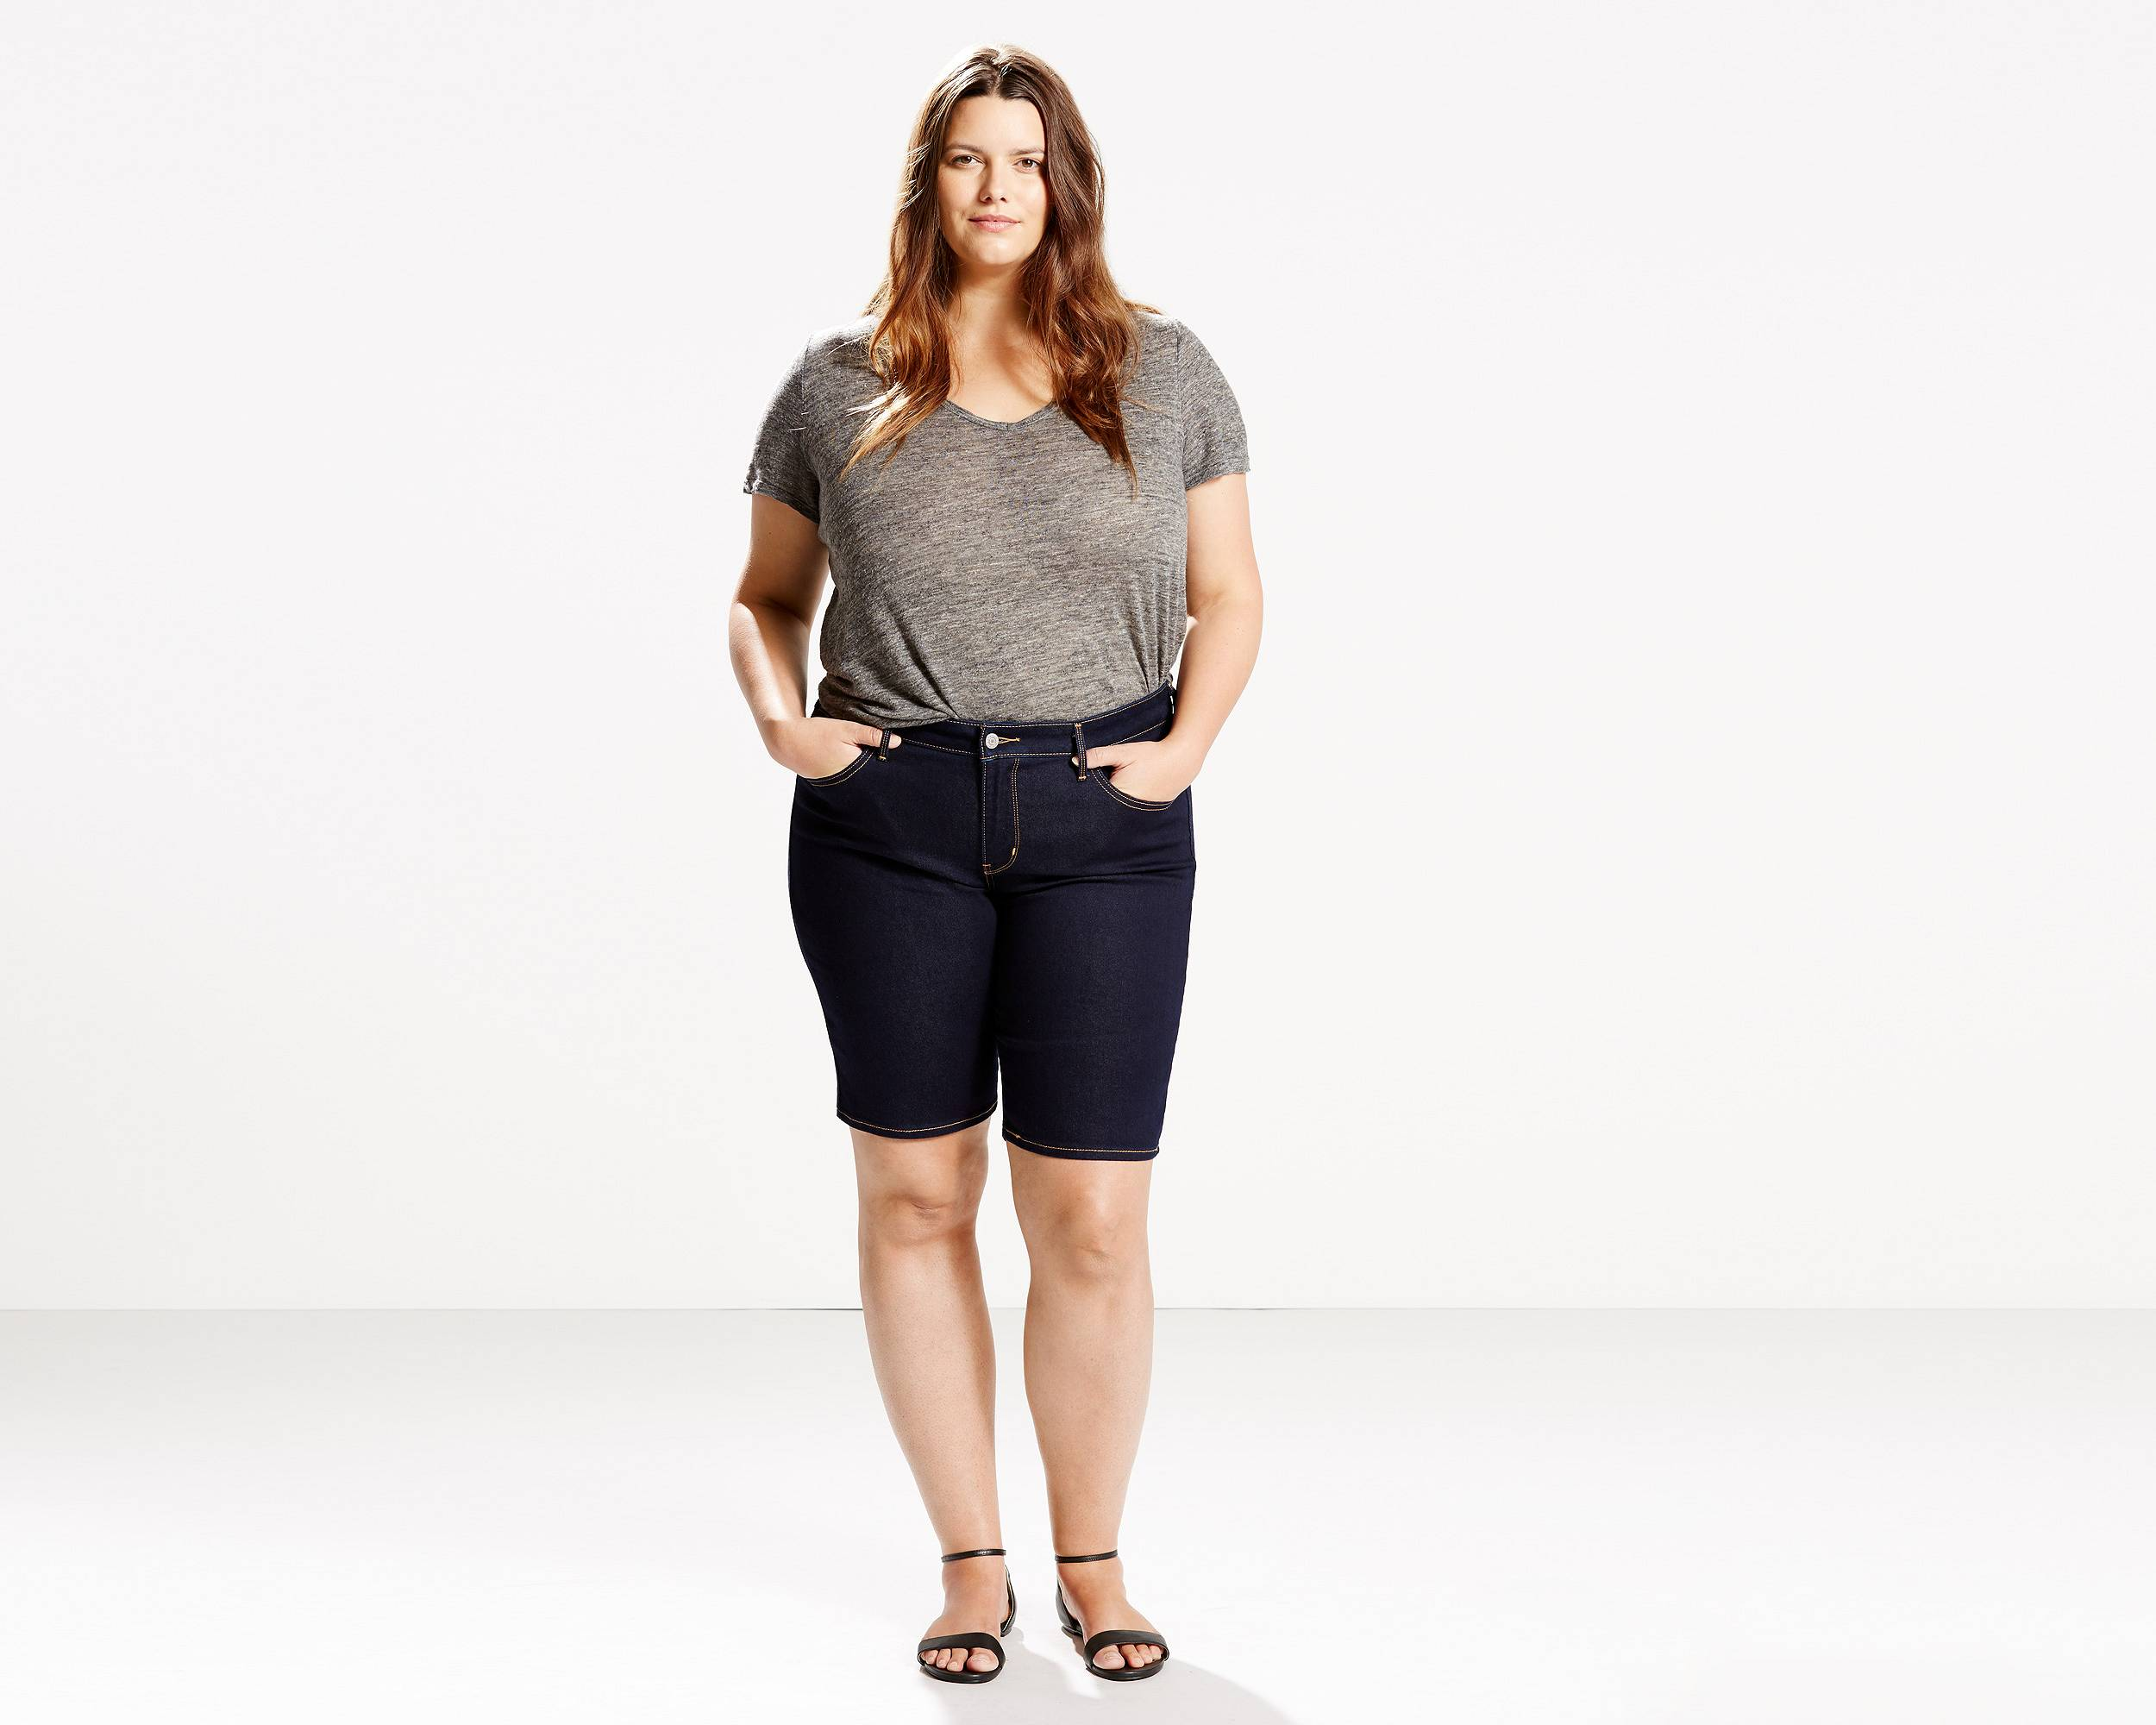 Plus Size & Petite Denim Clothing - Extended Sizes | Levi's®